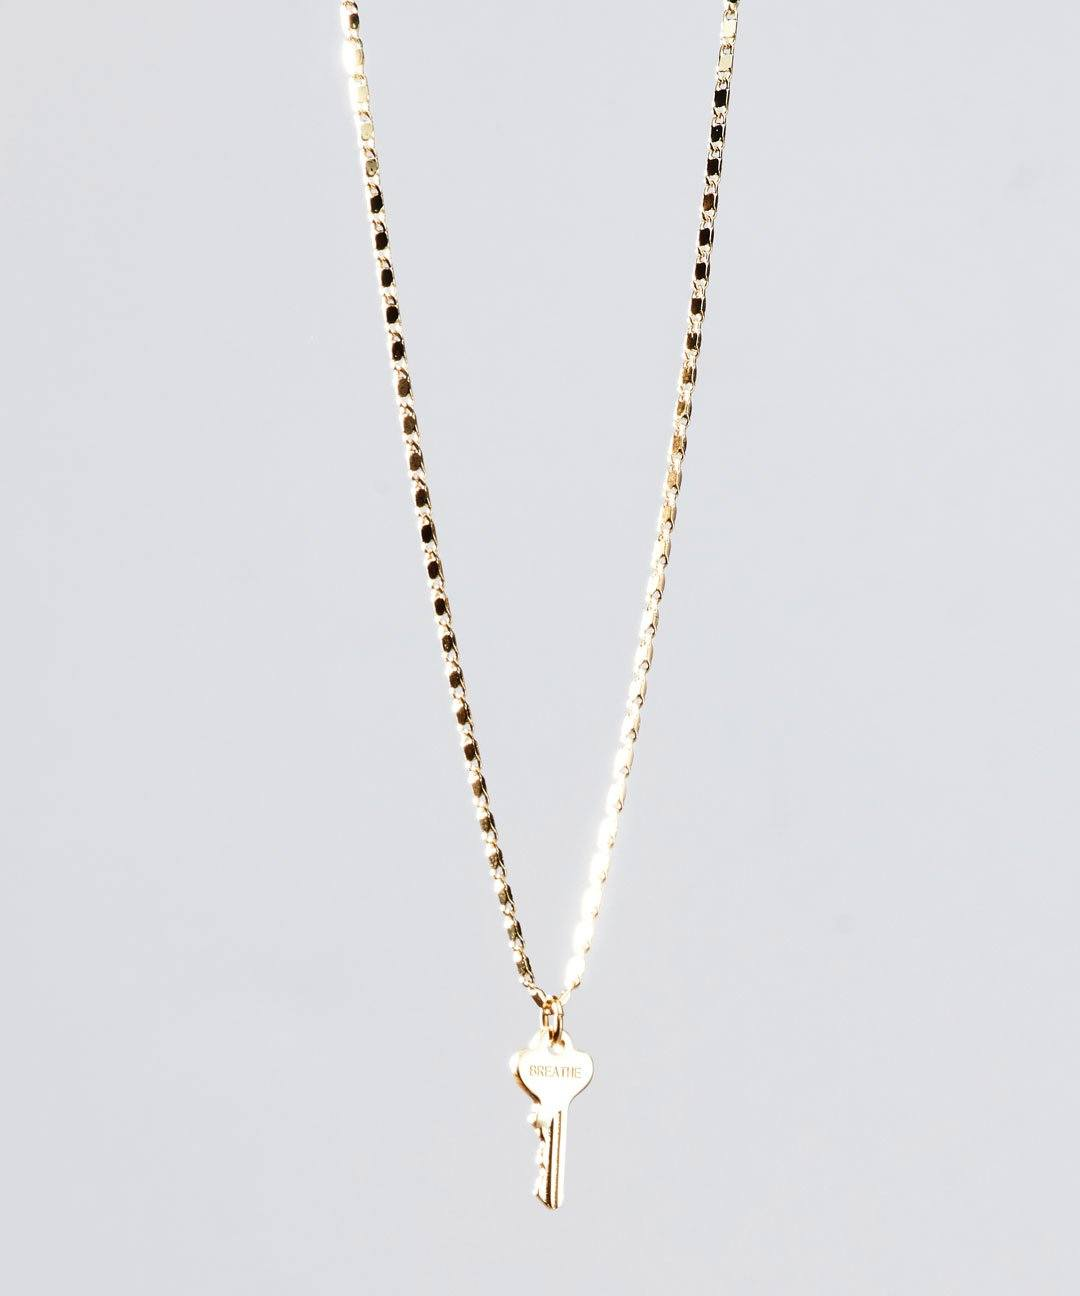 Gold Petite Key Necklace Necklaces The Giving Keys BREATHE GOLD